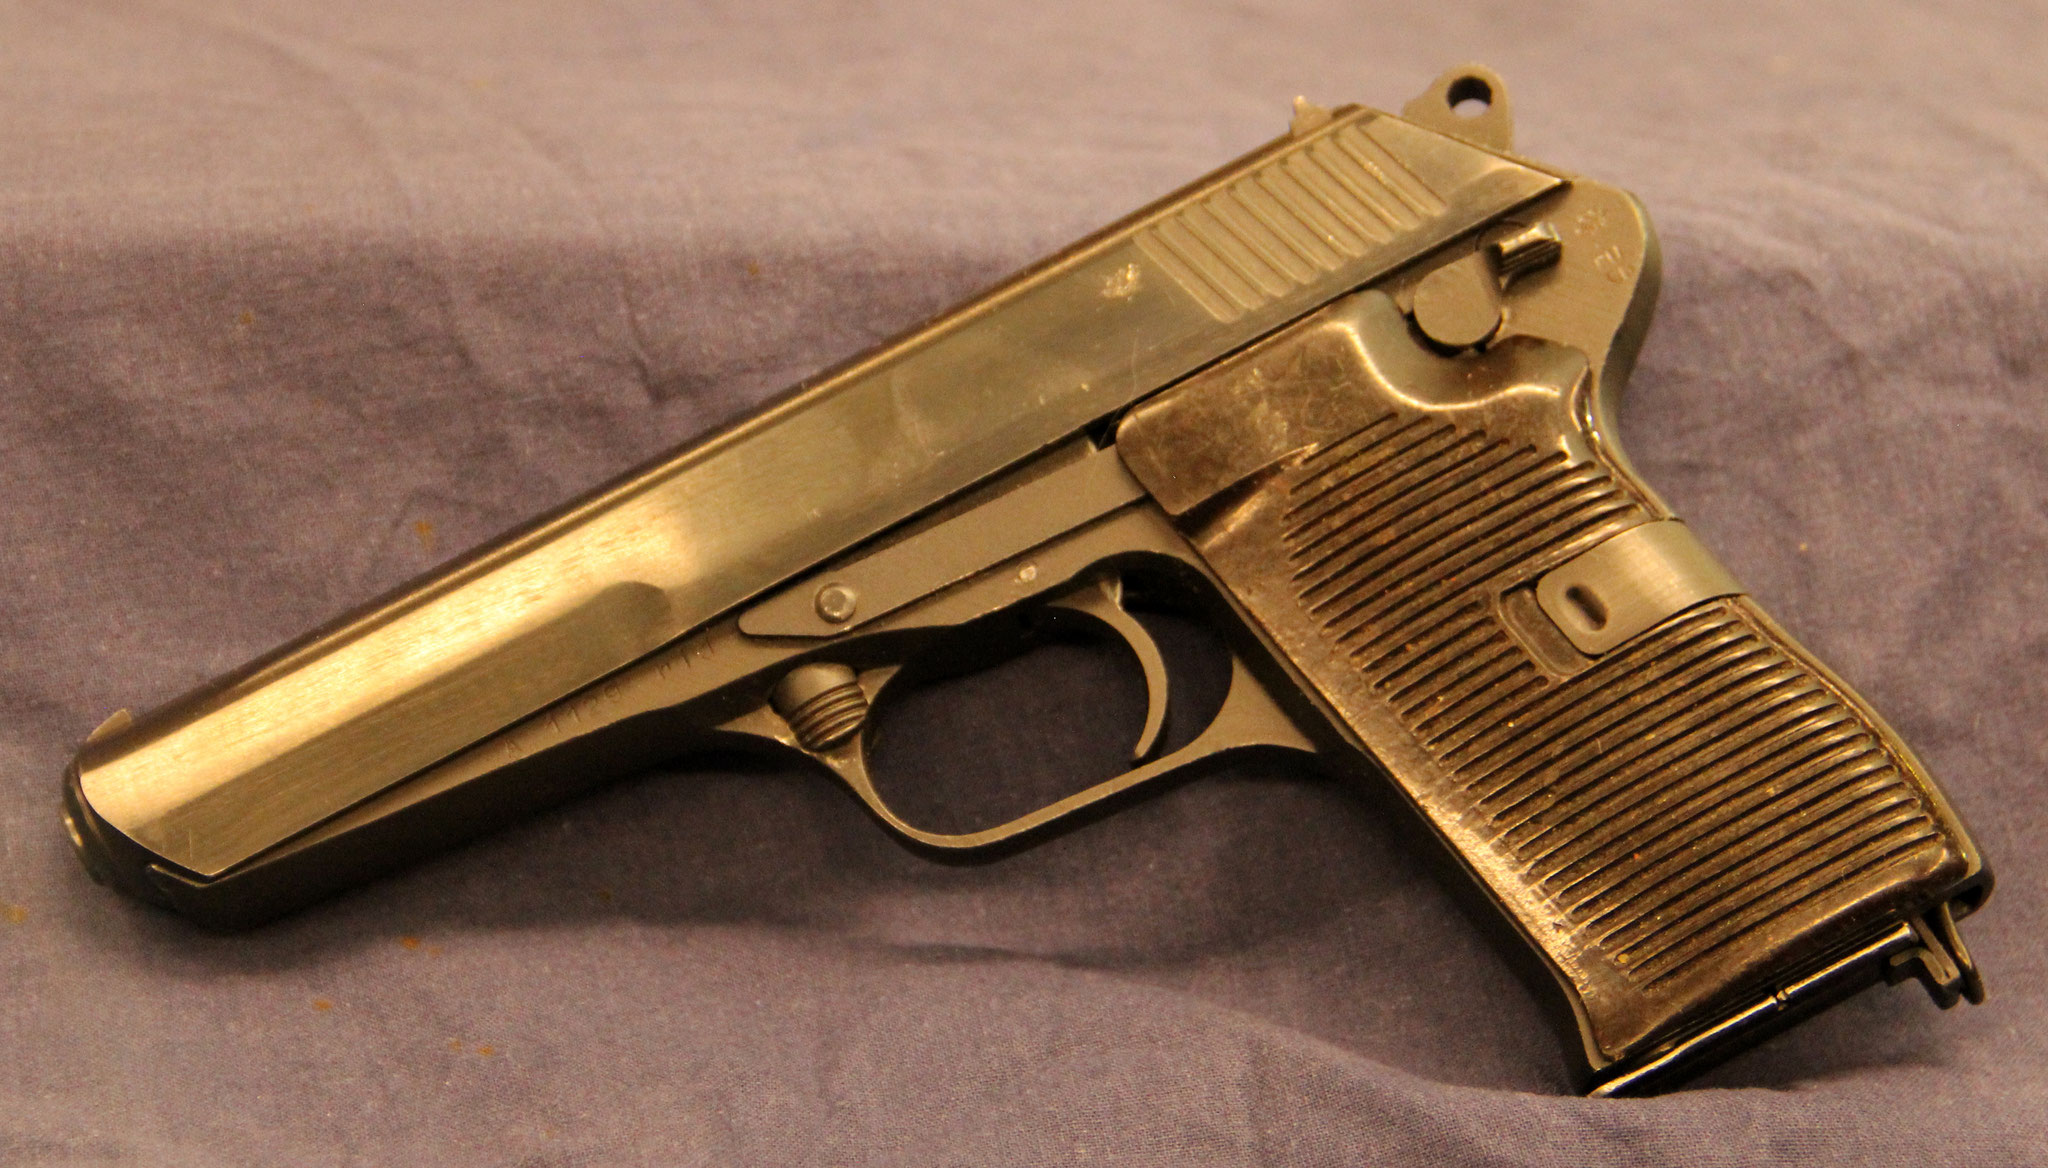 CZ model 52. Cert.no. 107 € 475,-